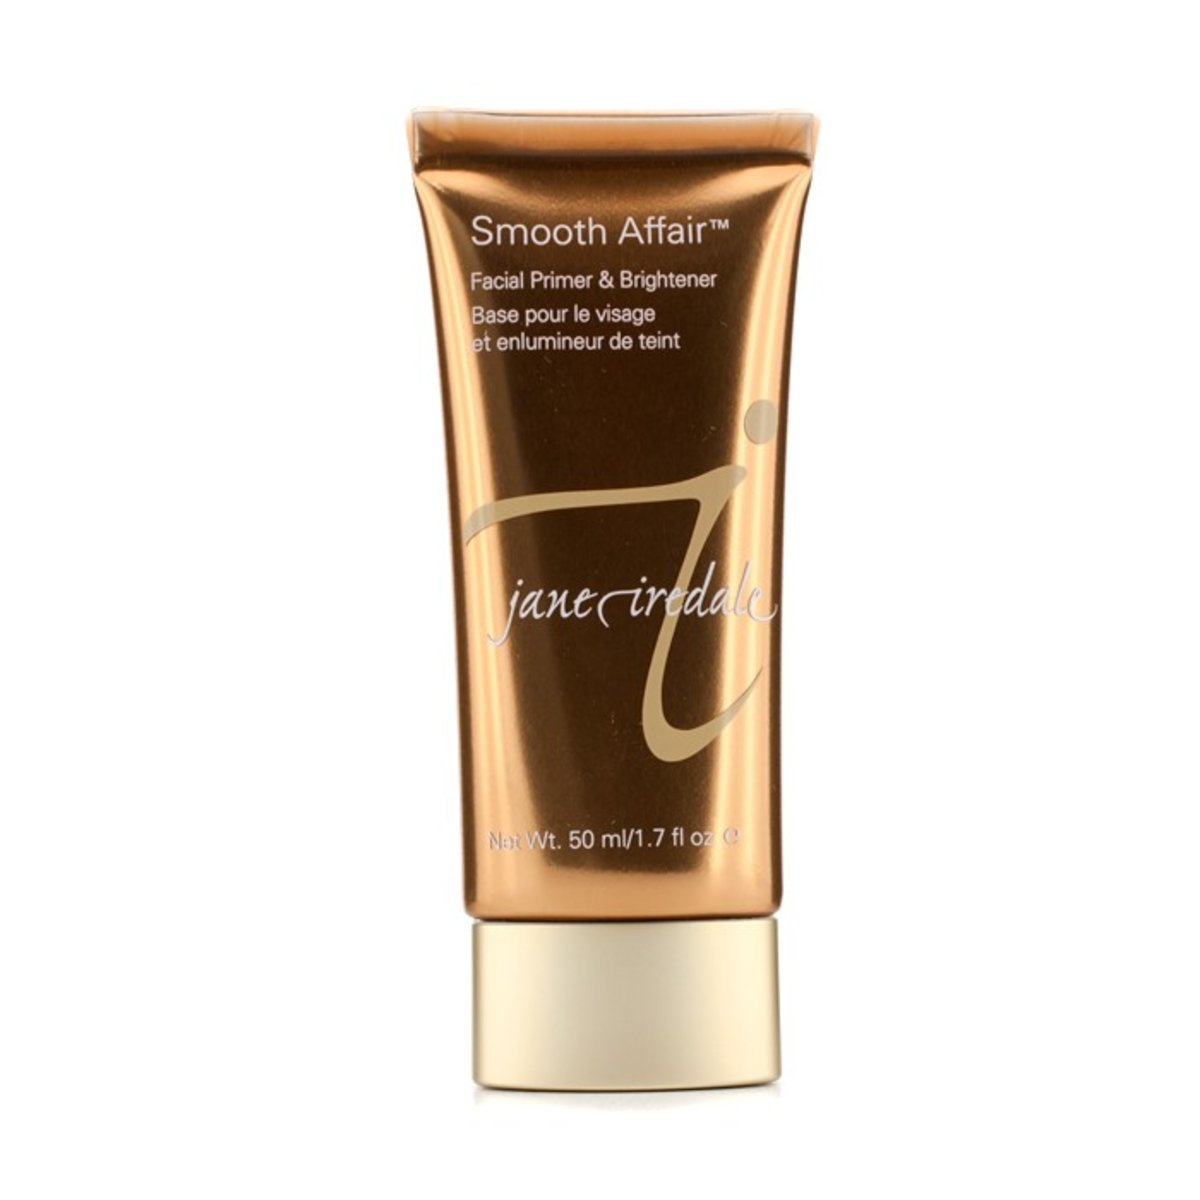 Smooth Affair Facial Primer & Brightener -[Parallel Import Product]